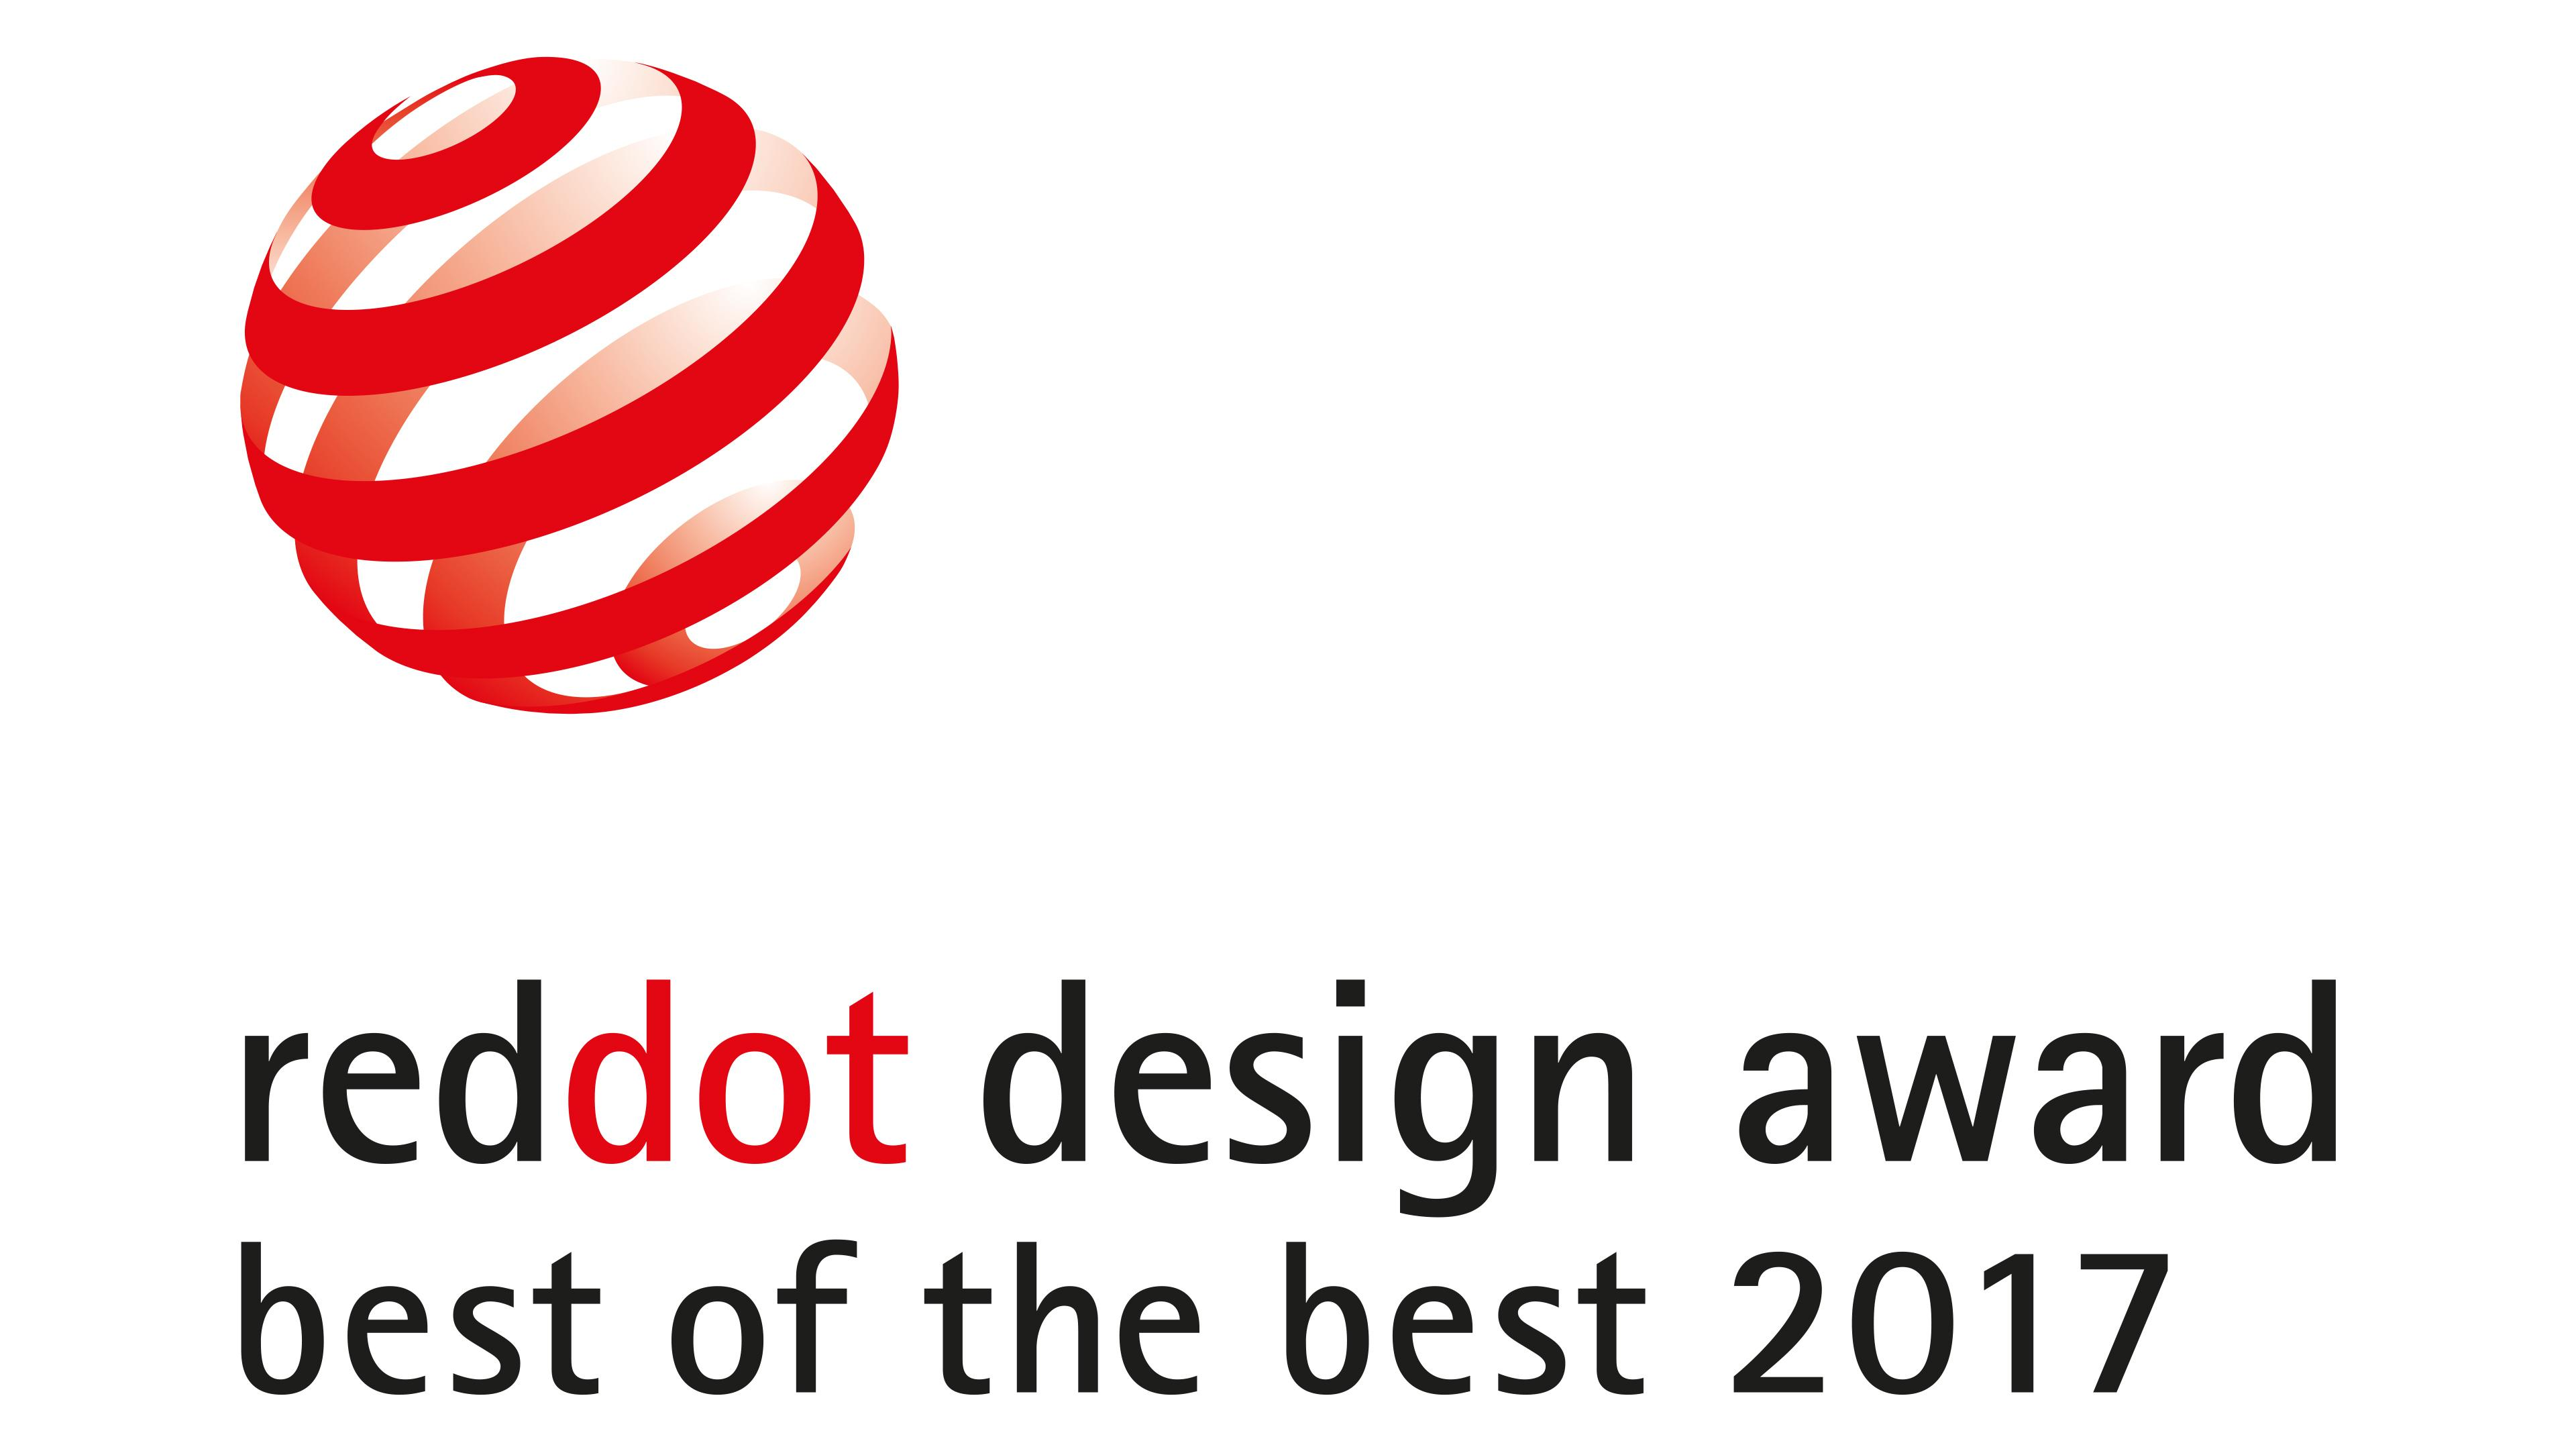 Award_PD2017_BoB-design.jpg